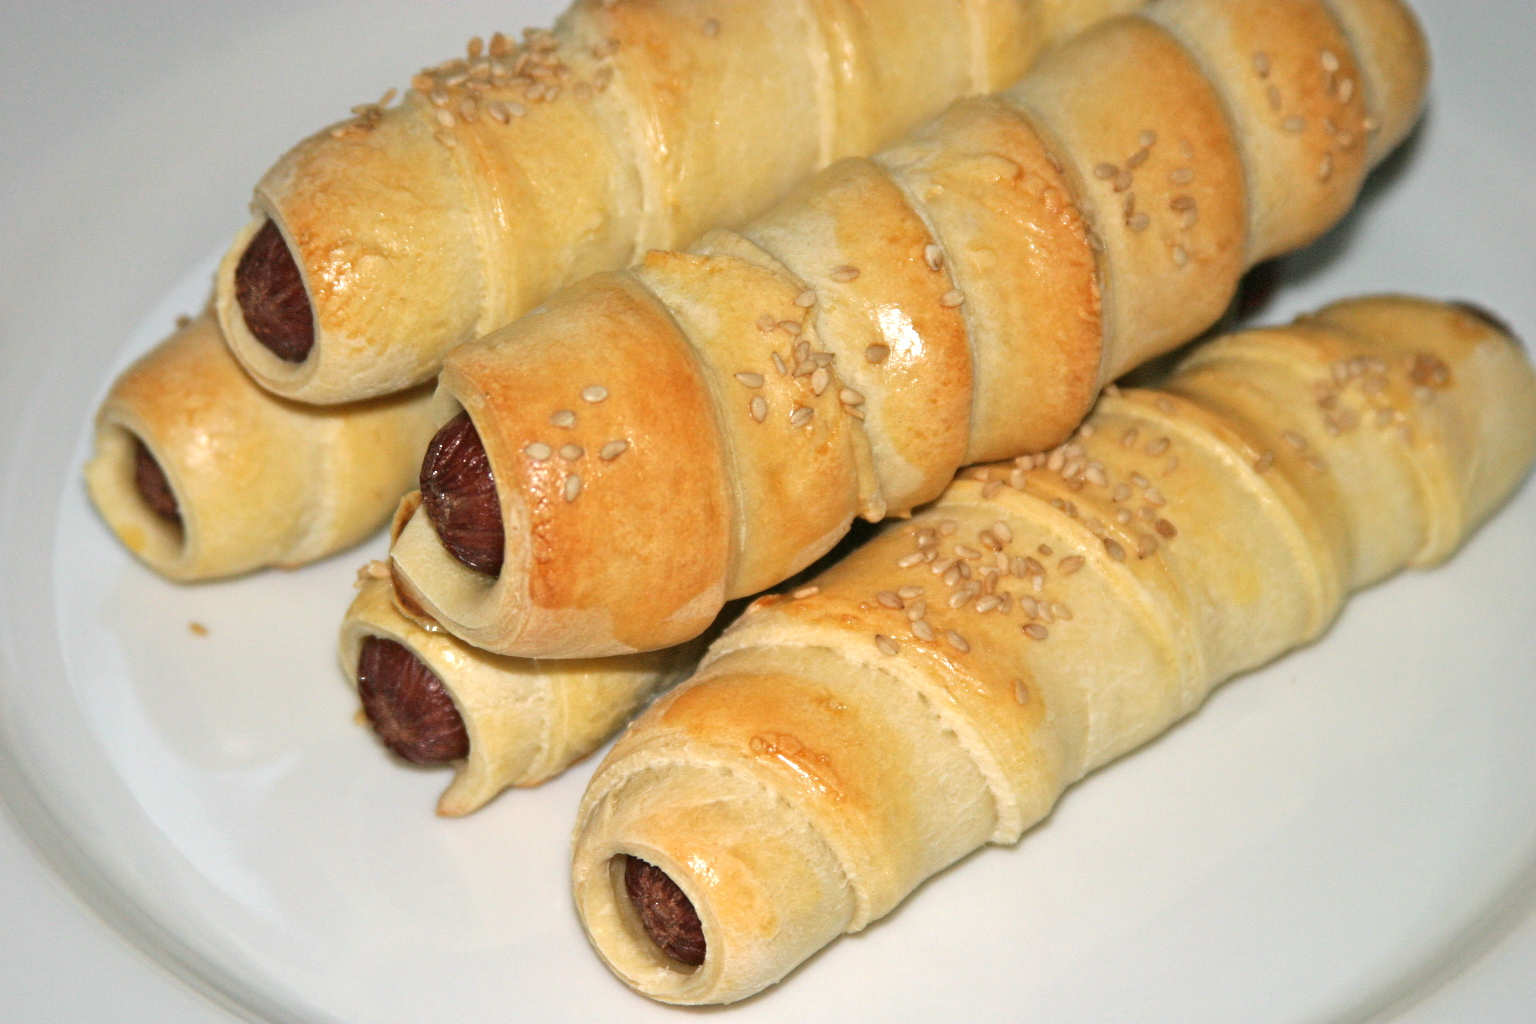 Sausage Rolls or 'Pigs in Blankets'